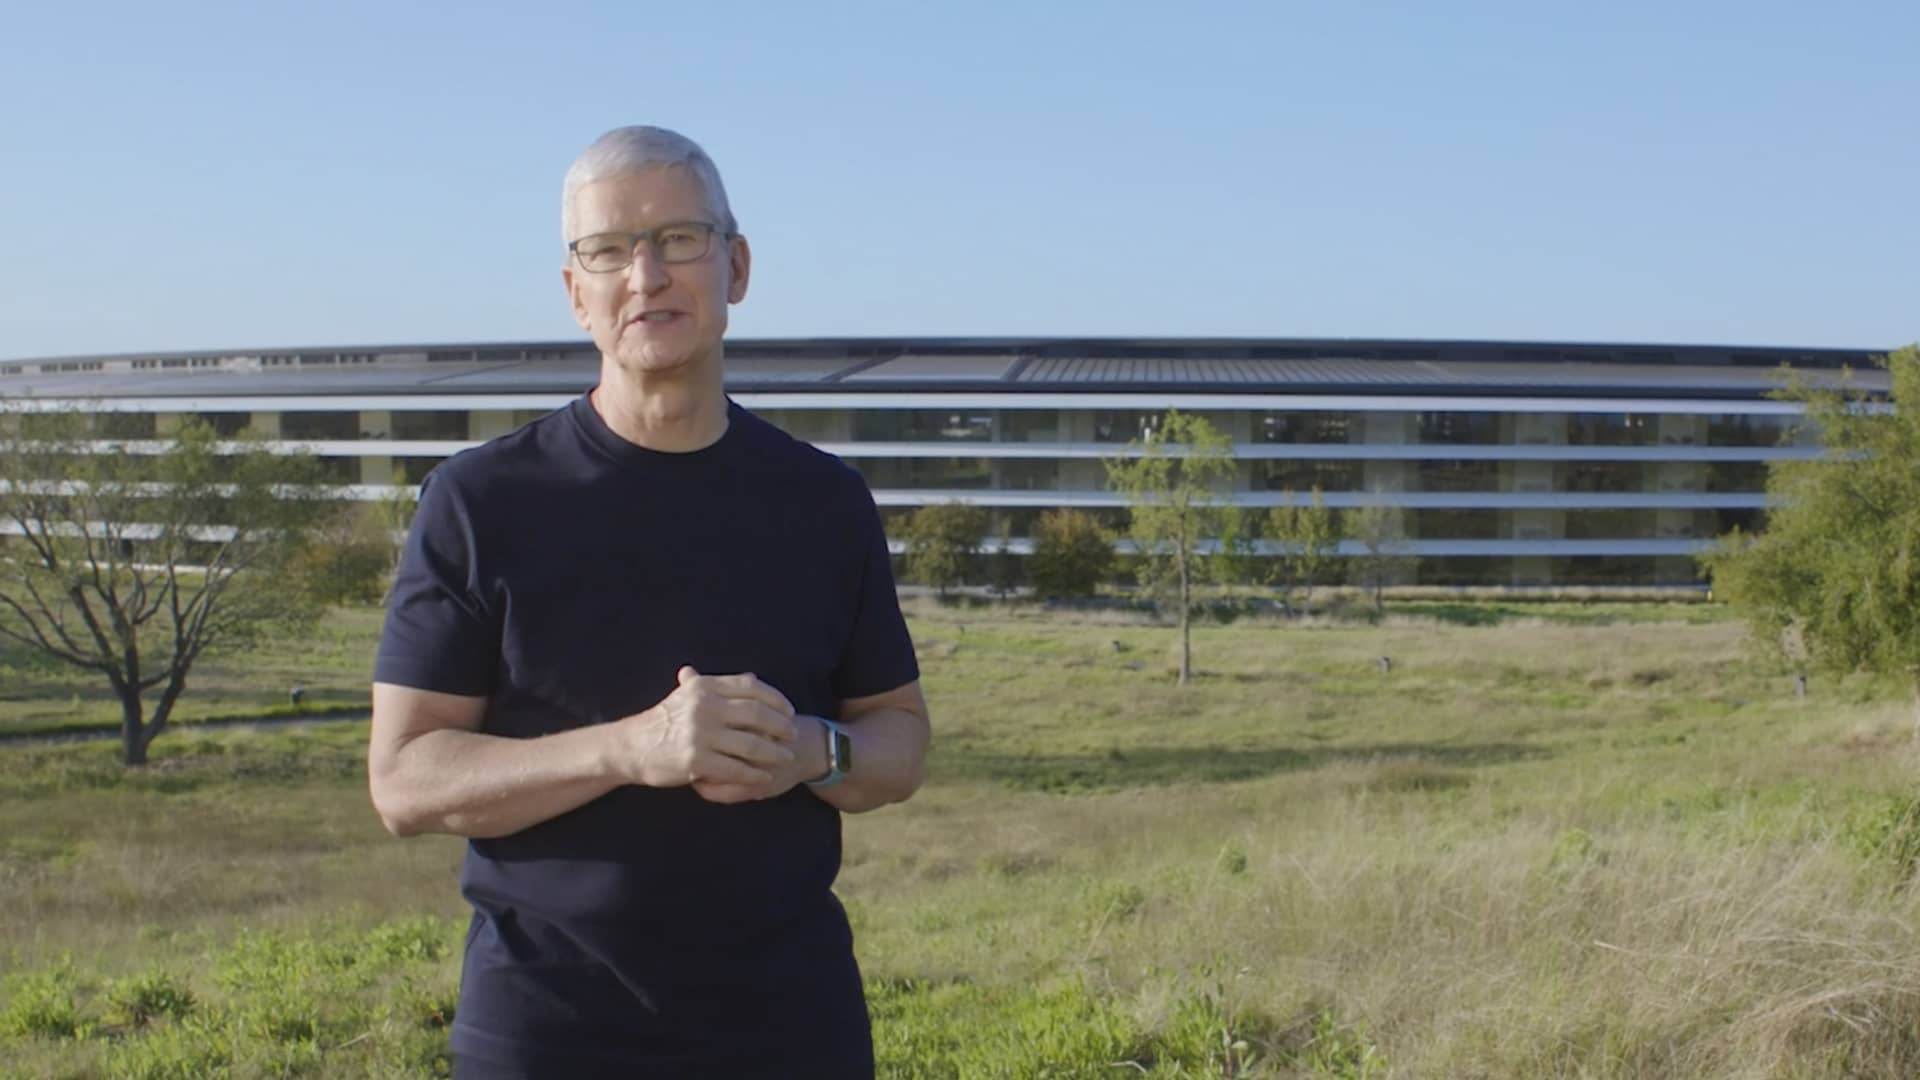 Tim Cook, CEO of Apple, speaks during an Apple Event on April 20th, 2021.